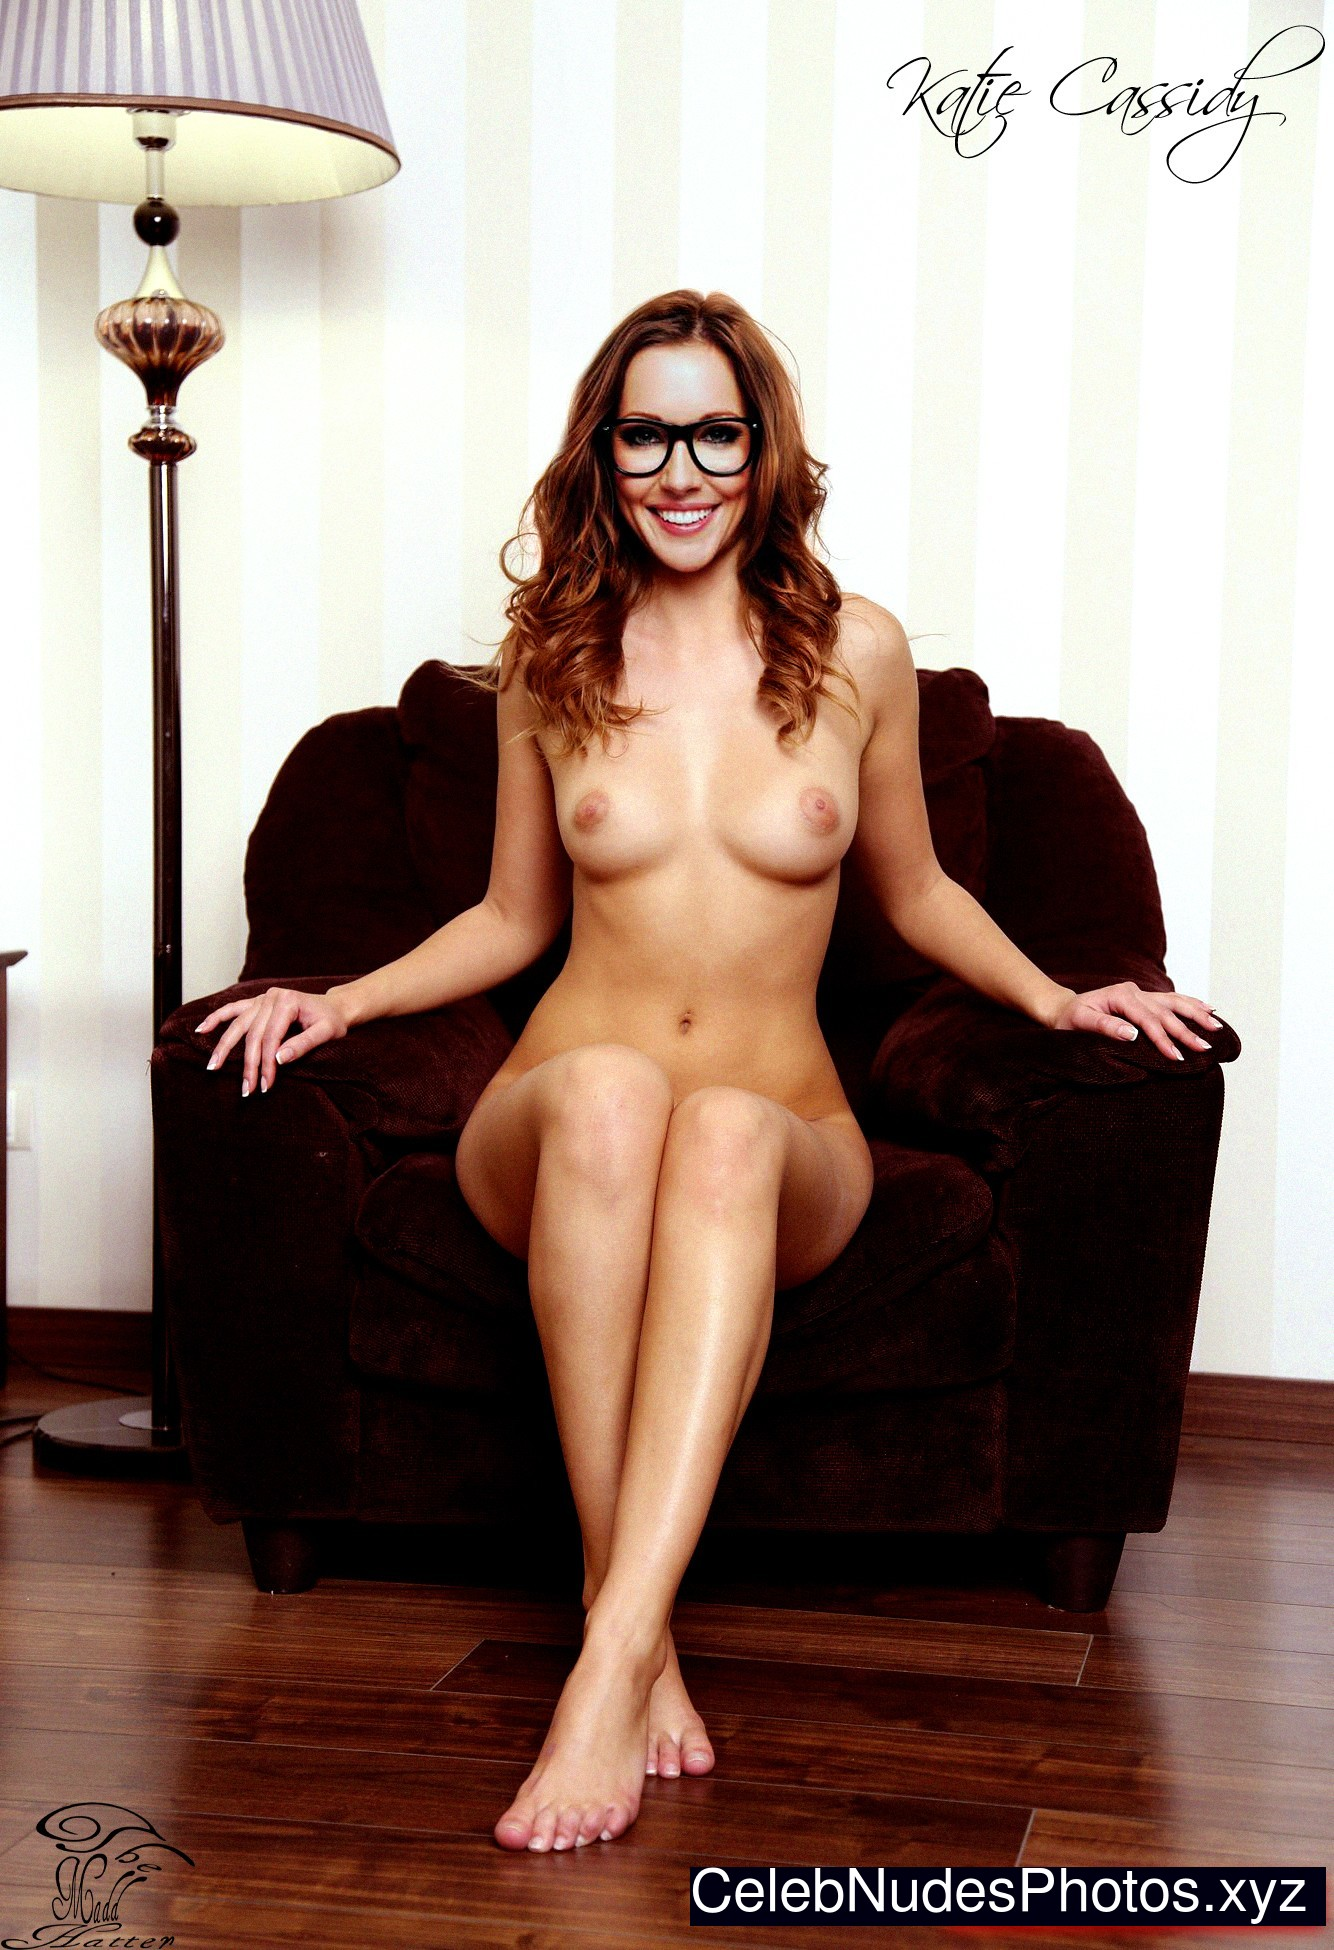 Katie Cassidy naked celebritys